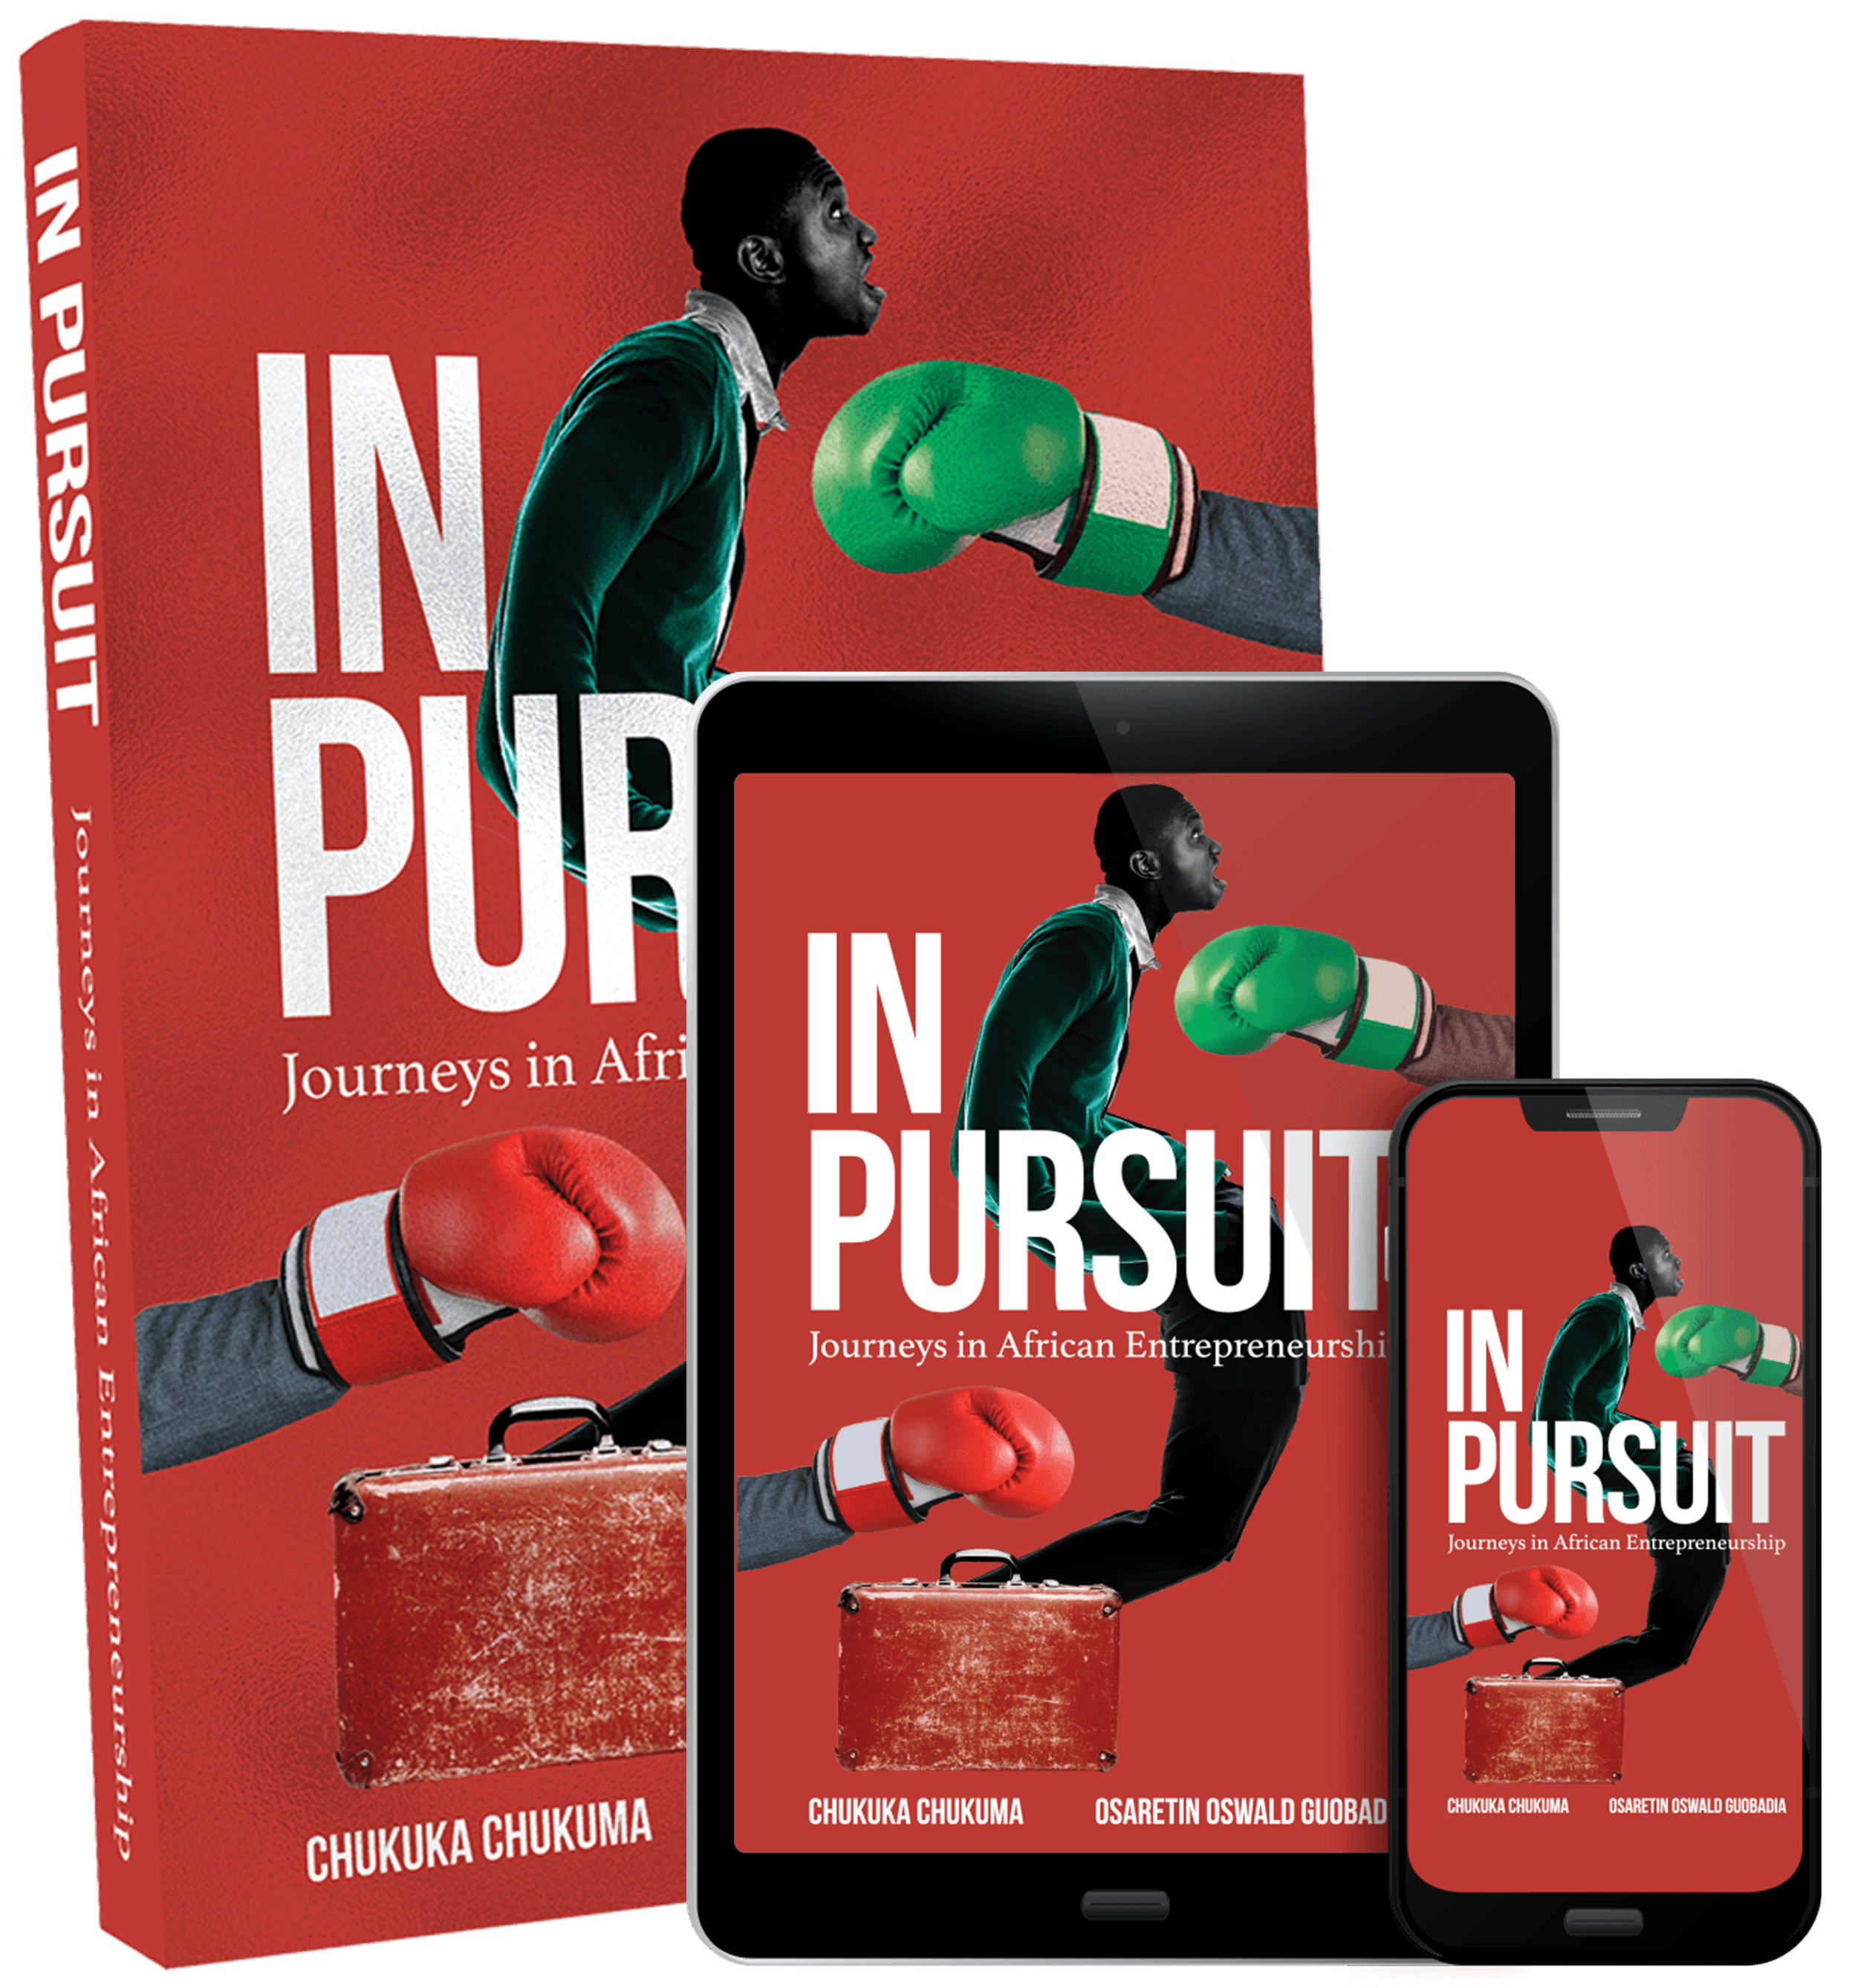 In Pursuit Book in hard copy and e-book form